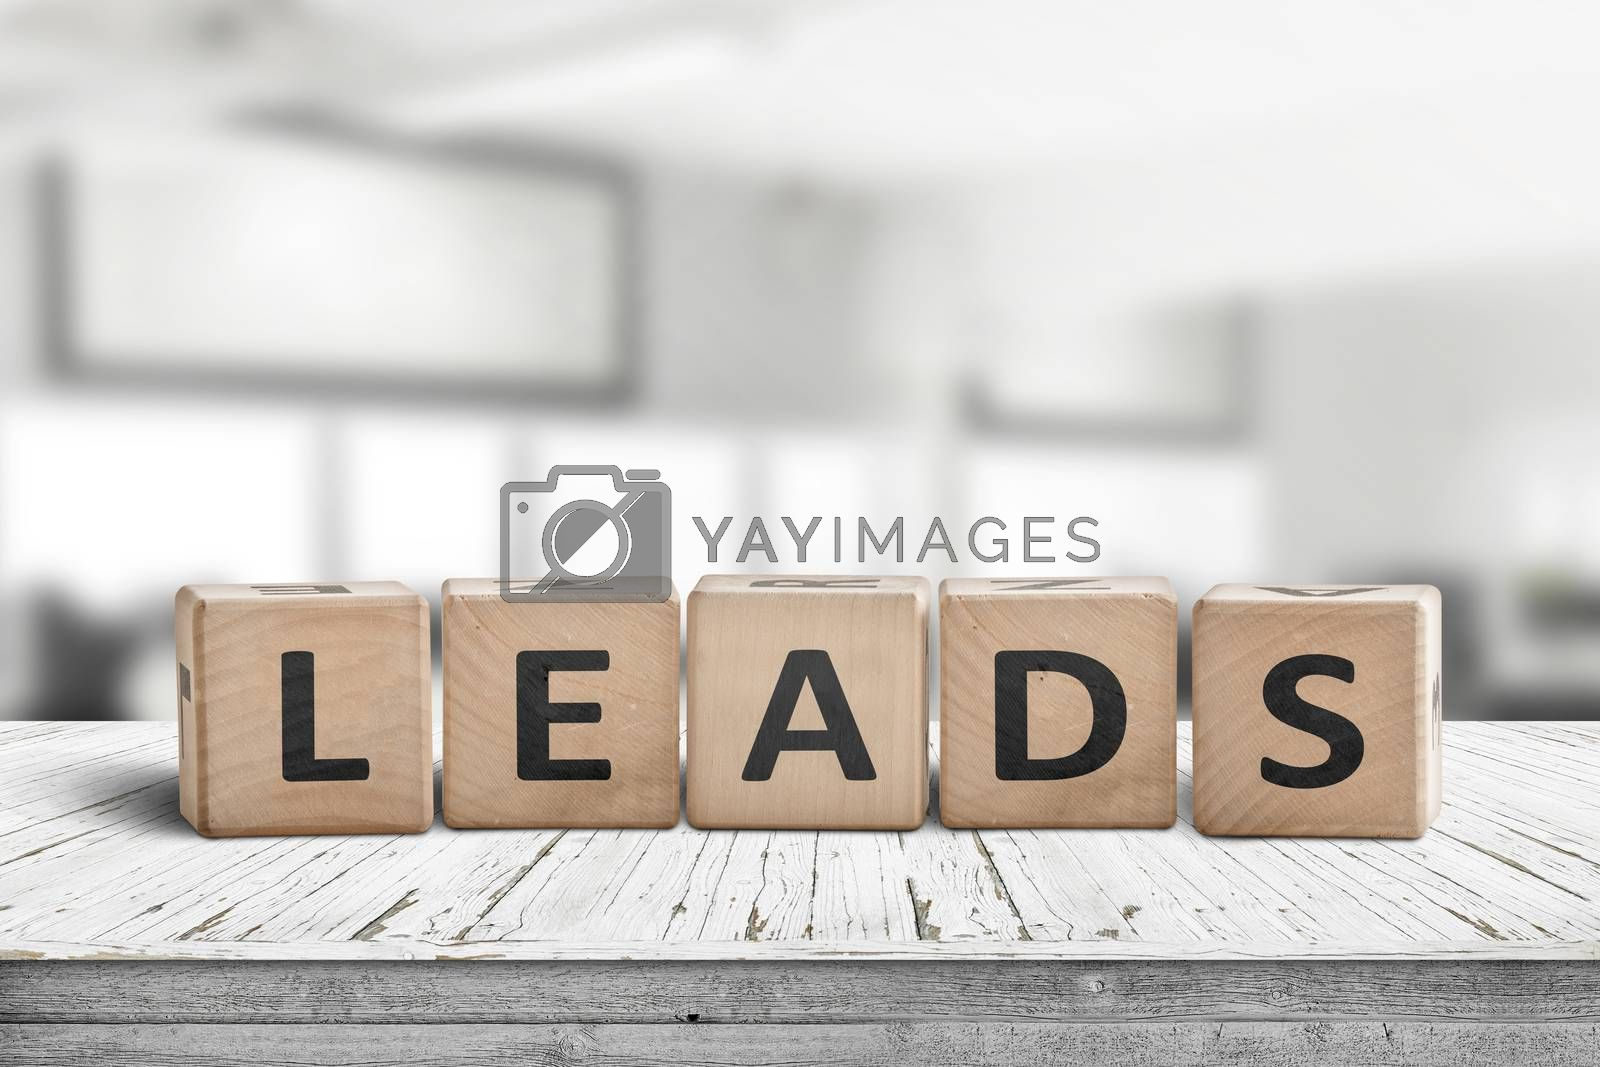 Leads sign in a bright office environment on a wooden desk with blocks